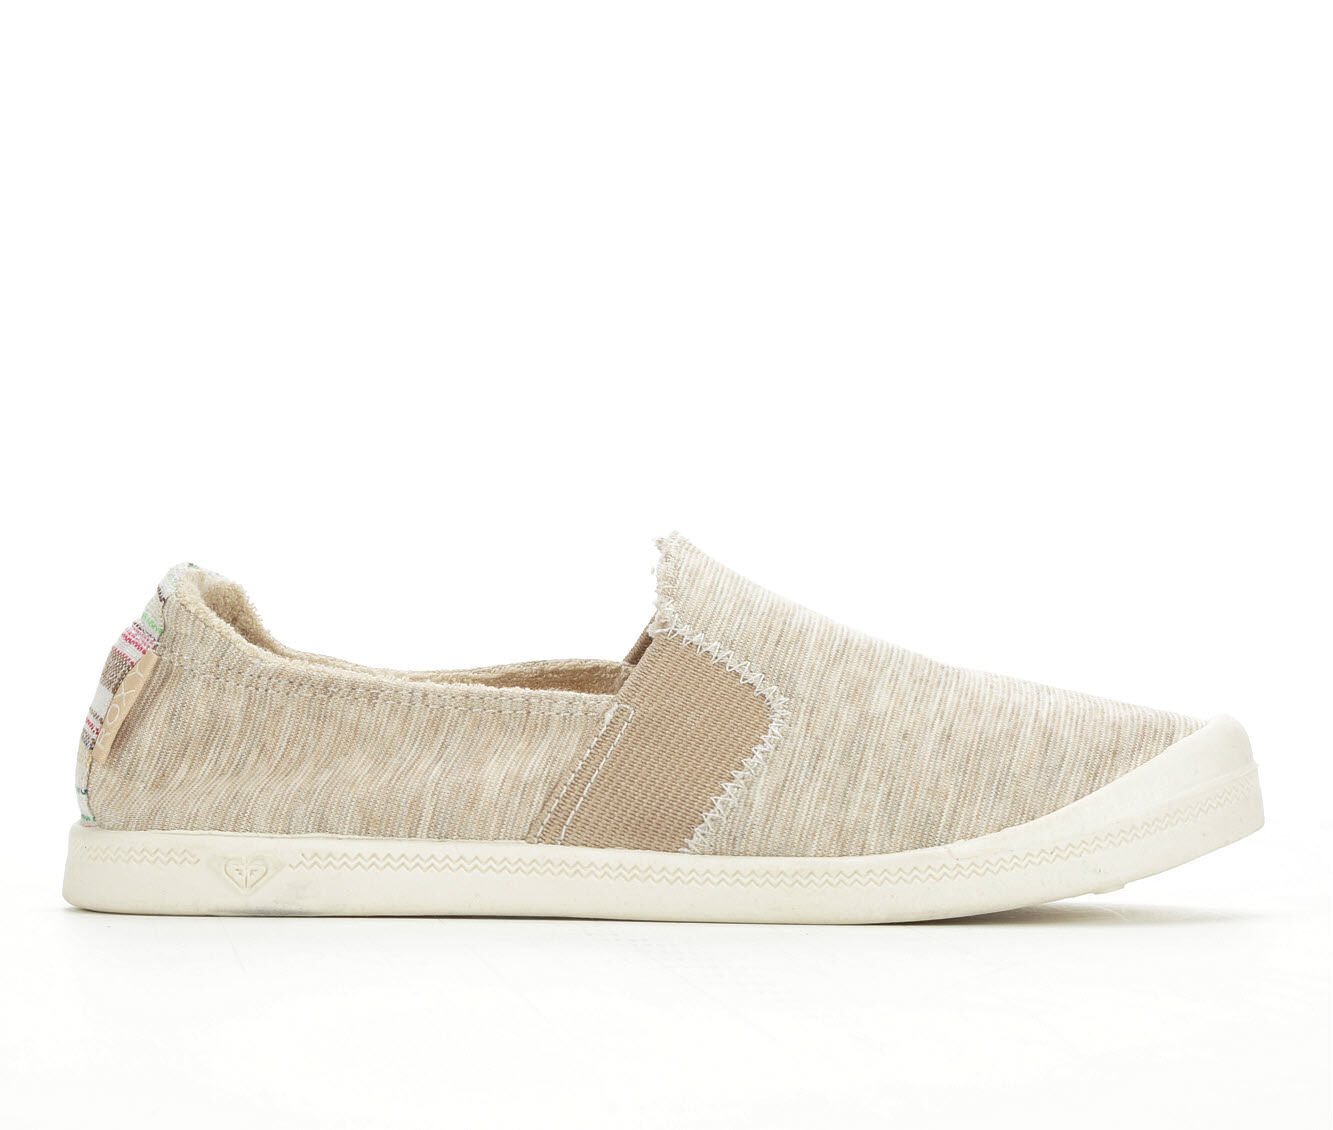 Women's Roxy Palisades Slip-On Sneakers Taupe